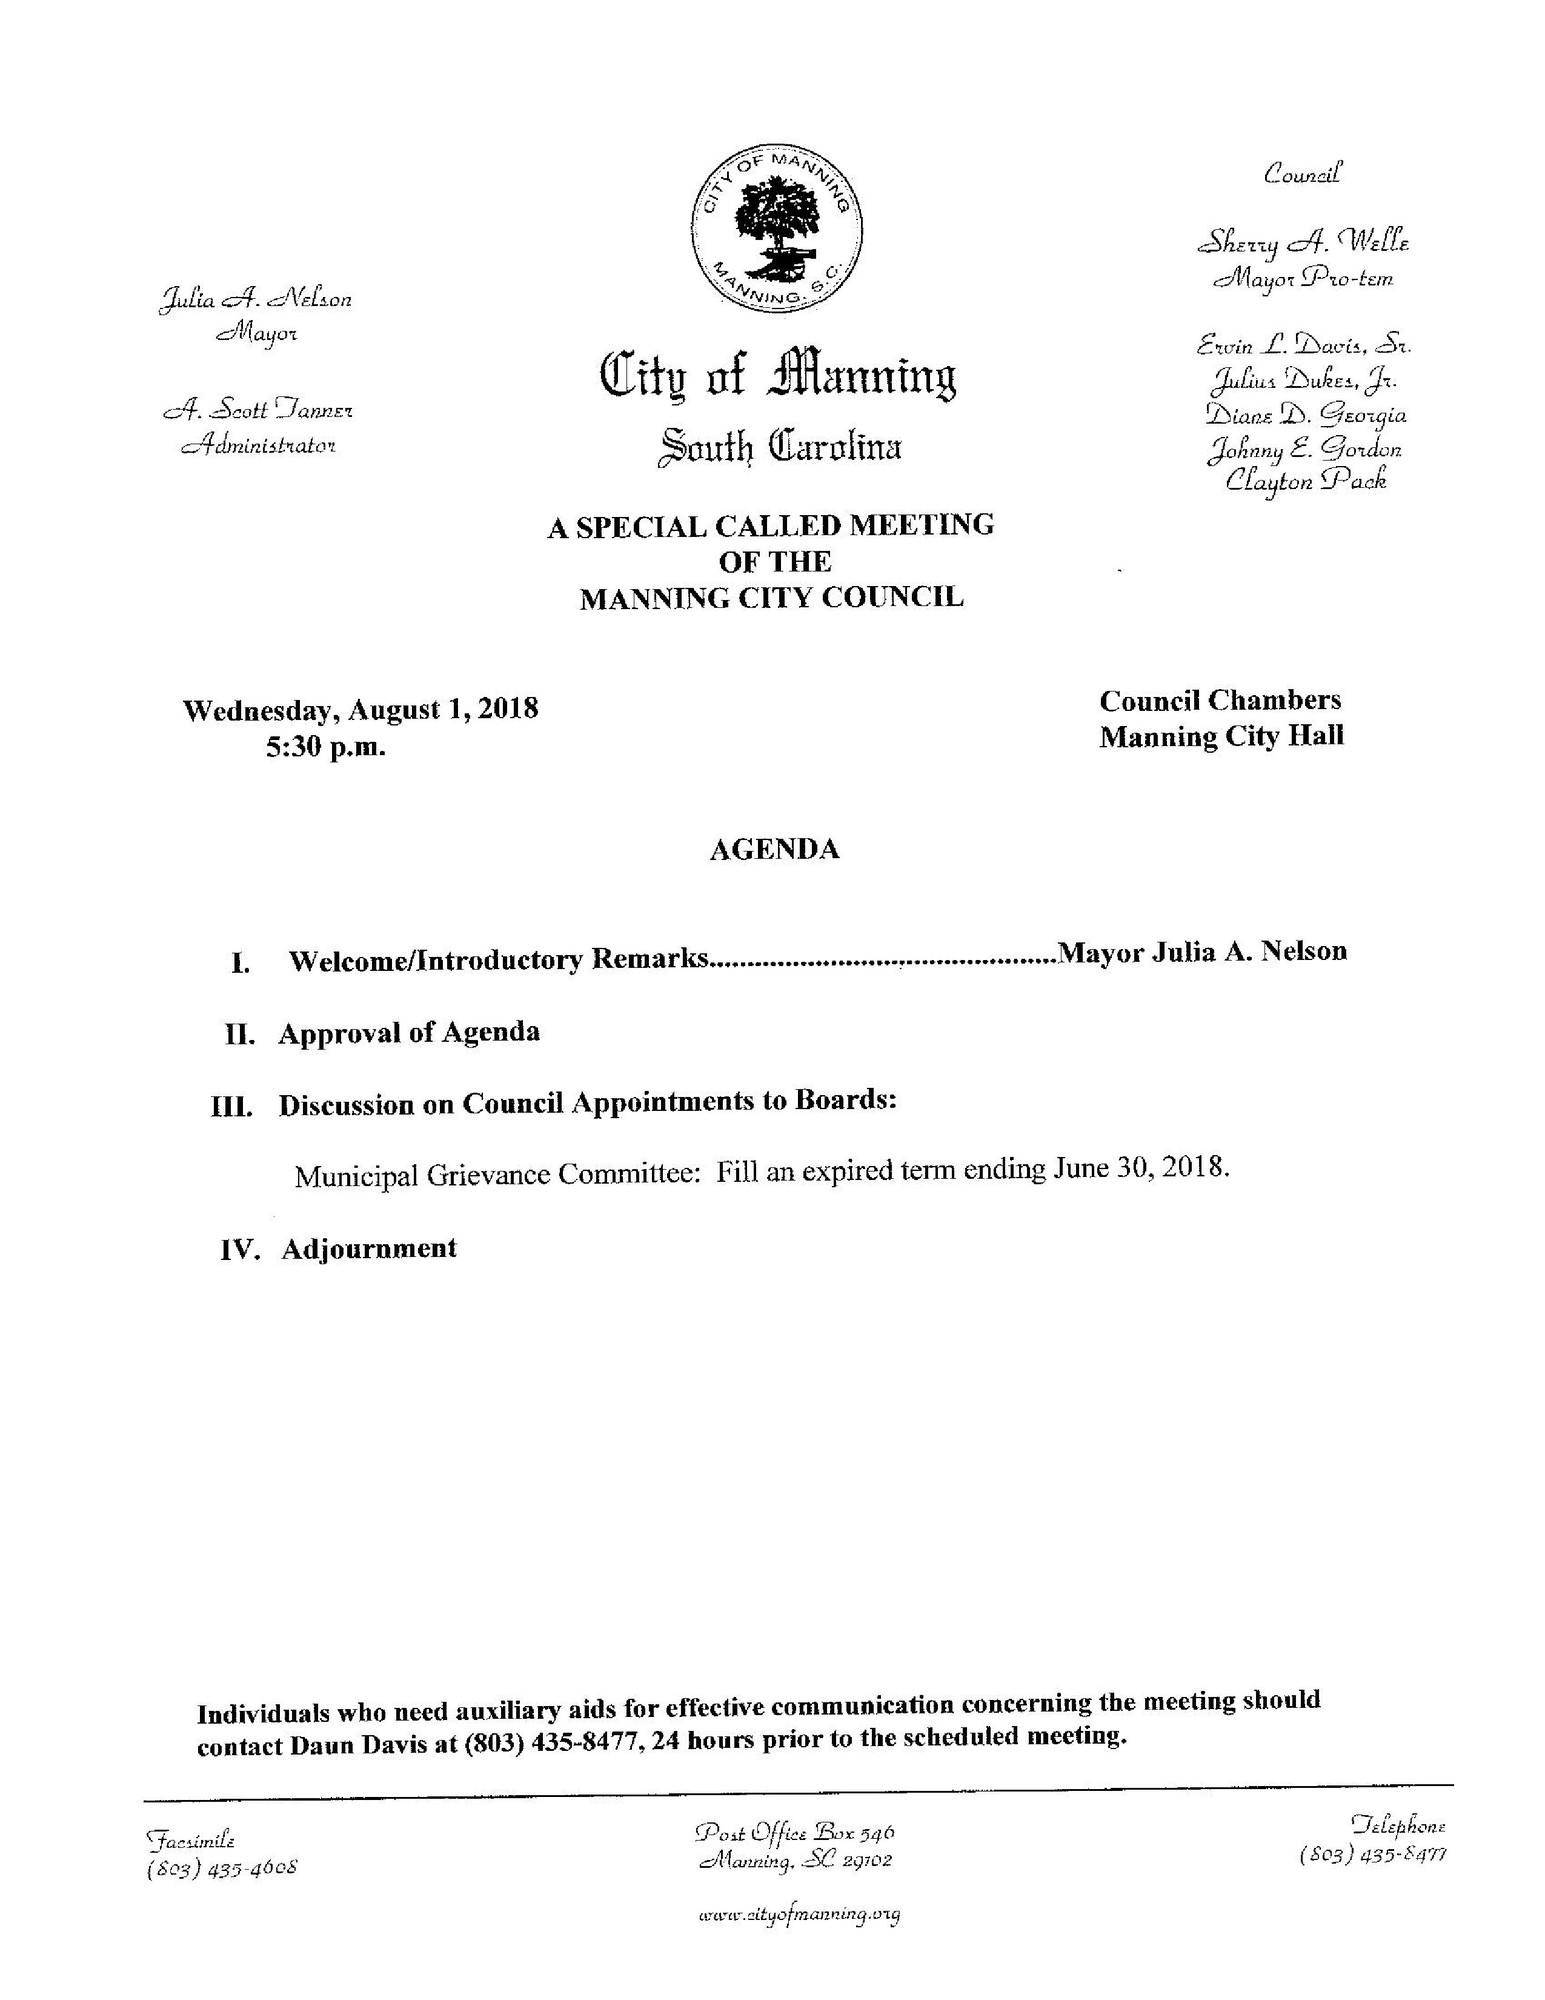 A copy of the agenda for Wednesday's meeting distributed to The Sumter Item Tuesday afternoon shows a discussion will be had to fill an expired term ending June 30, 2018.